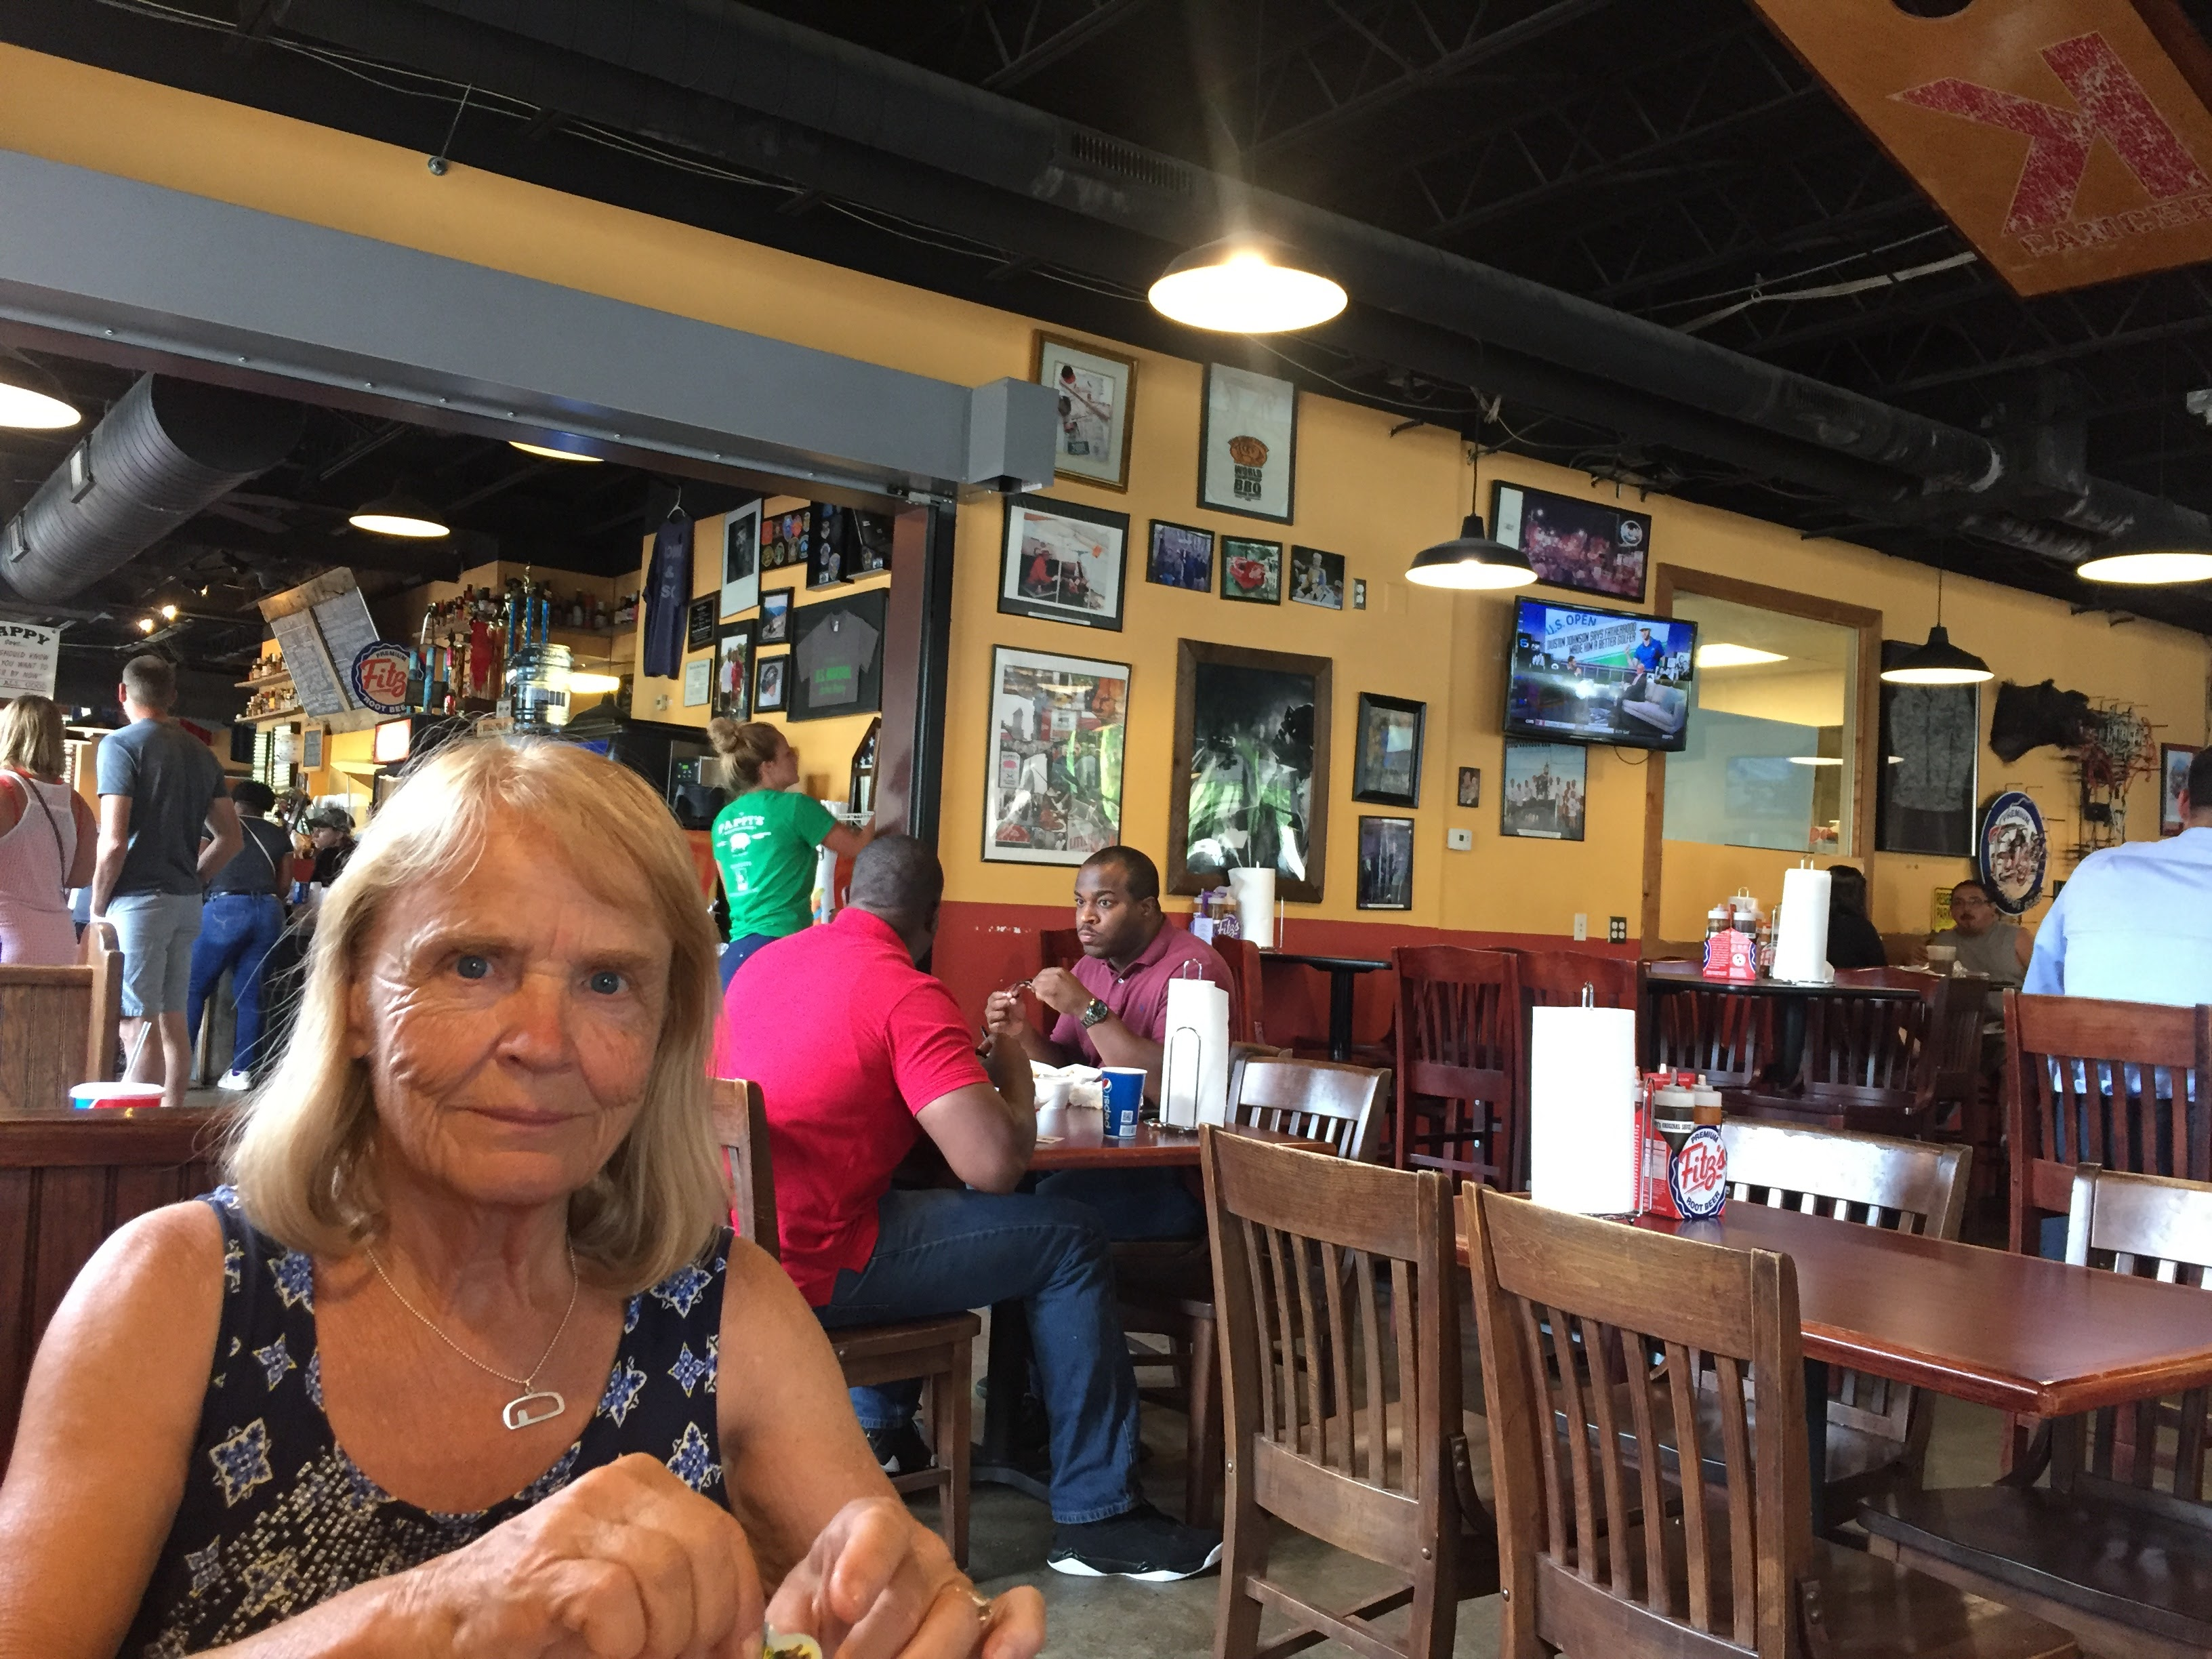 2017-06-16 St Louis - Dinner at Pappys